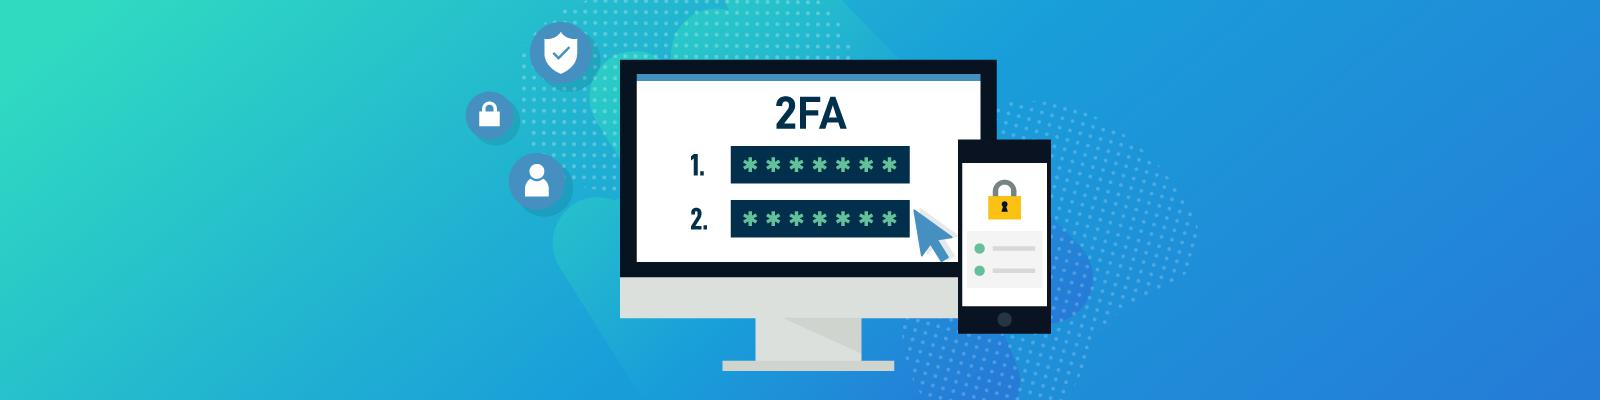 Security Improvements with Two Factor Authentication